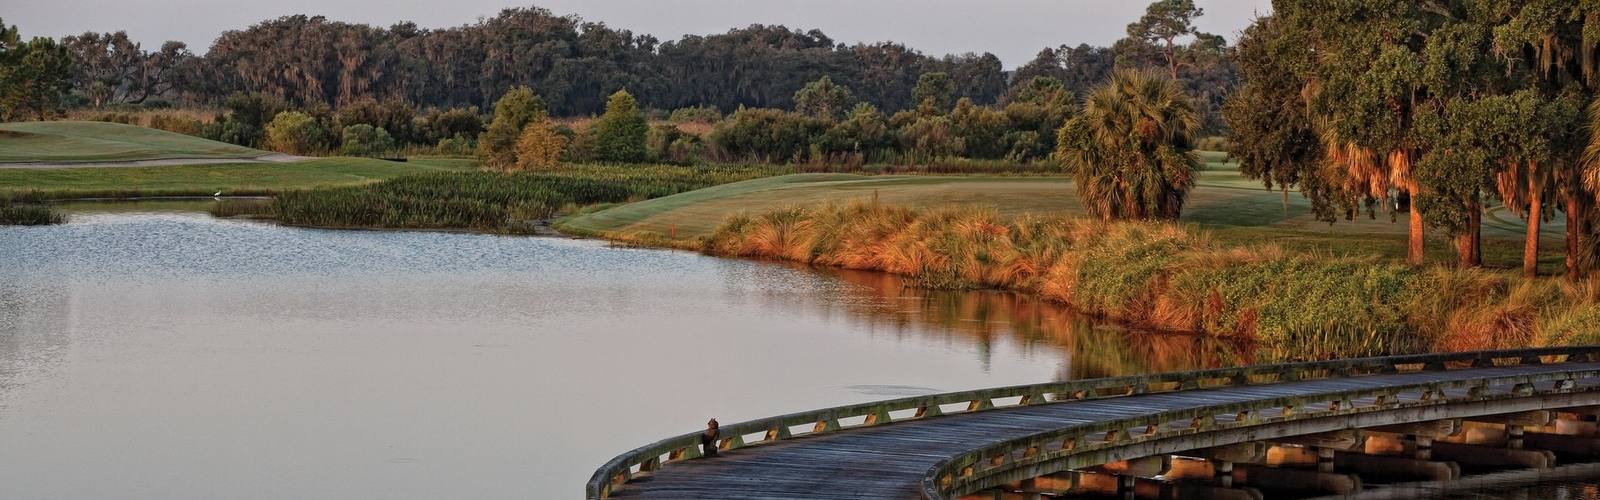 Golf Course Lake and Bridge